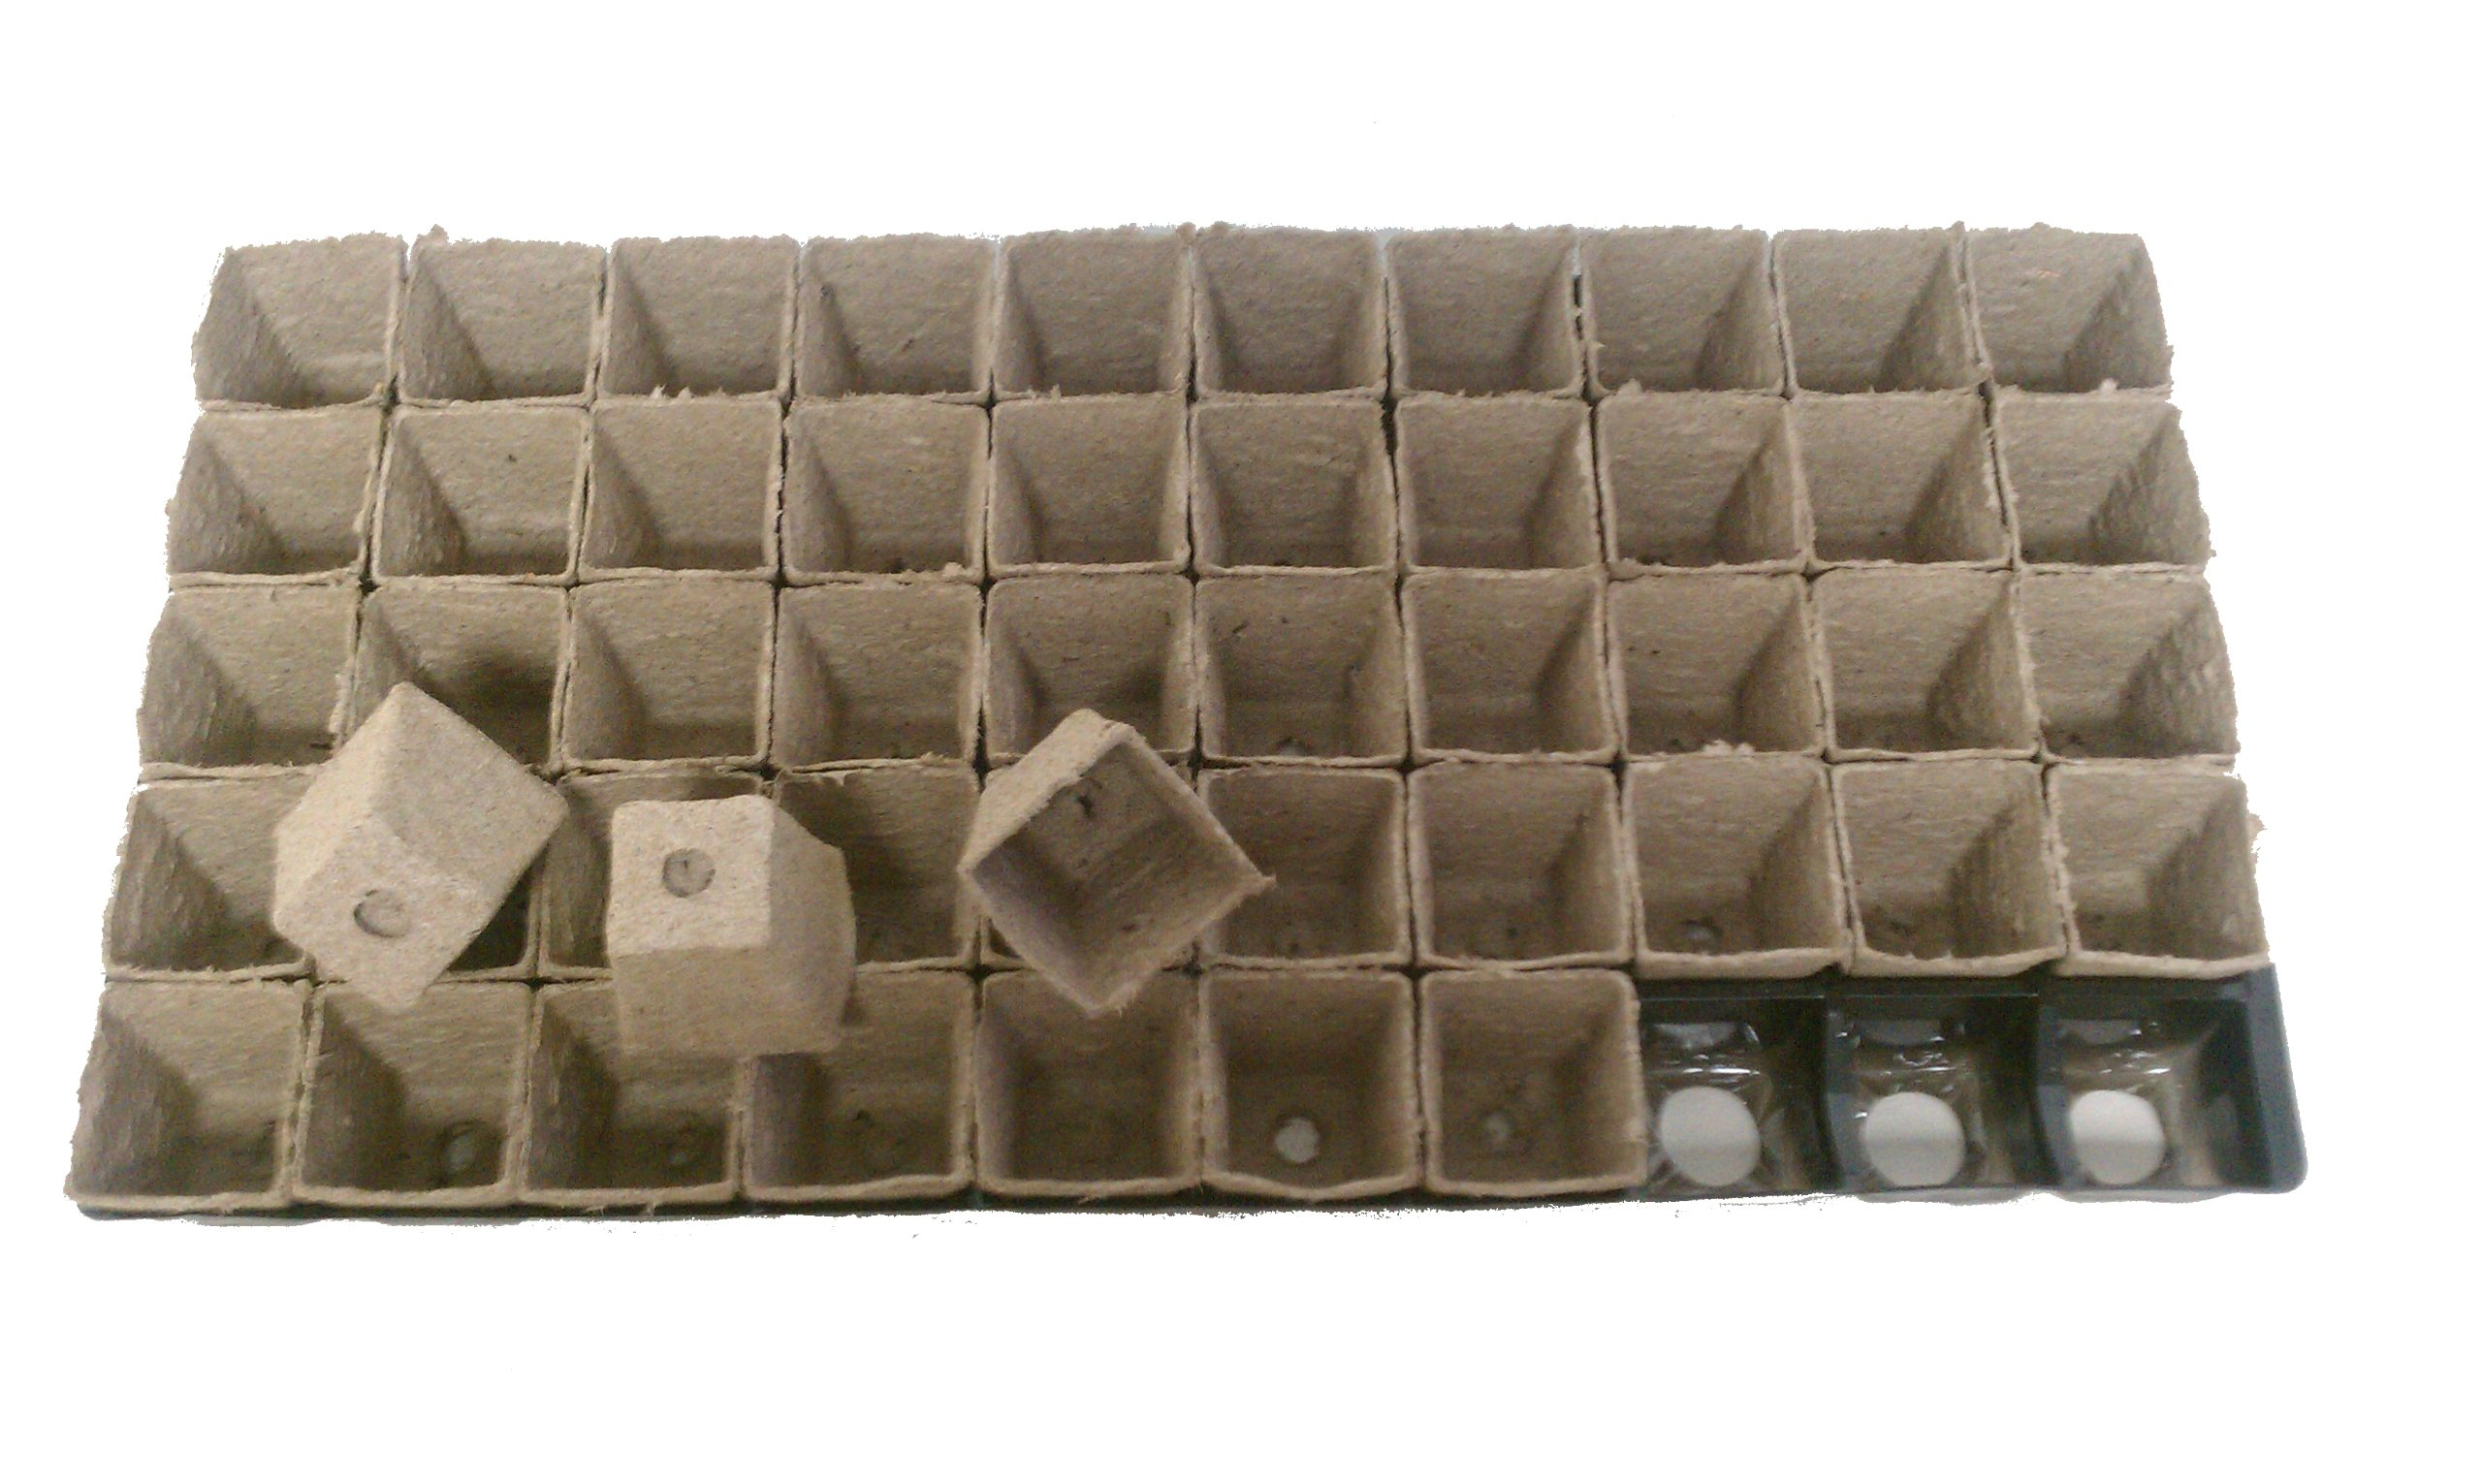 250 Square Jiffy Peat Pots Size 2x2 - Jiffy Poly Pak ~ Pots Are 2 Inch Square At the Top and 2 Inch Deep.